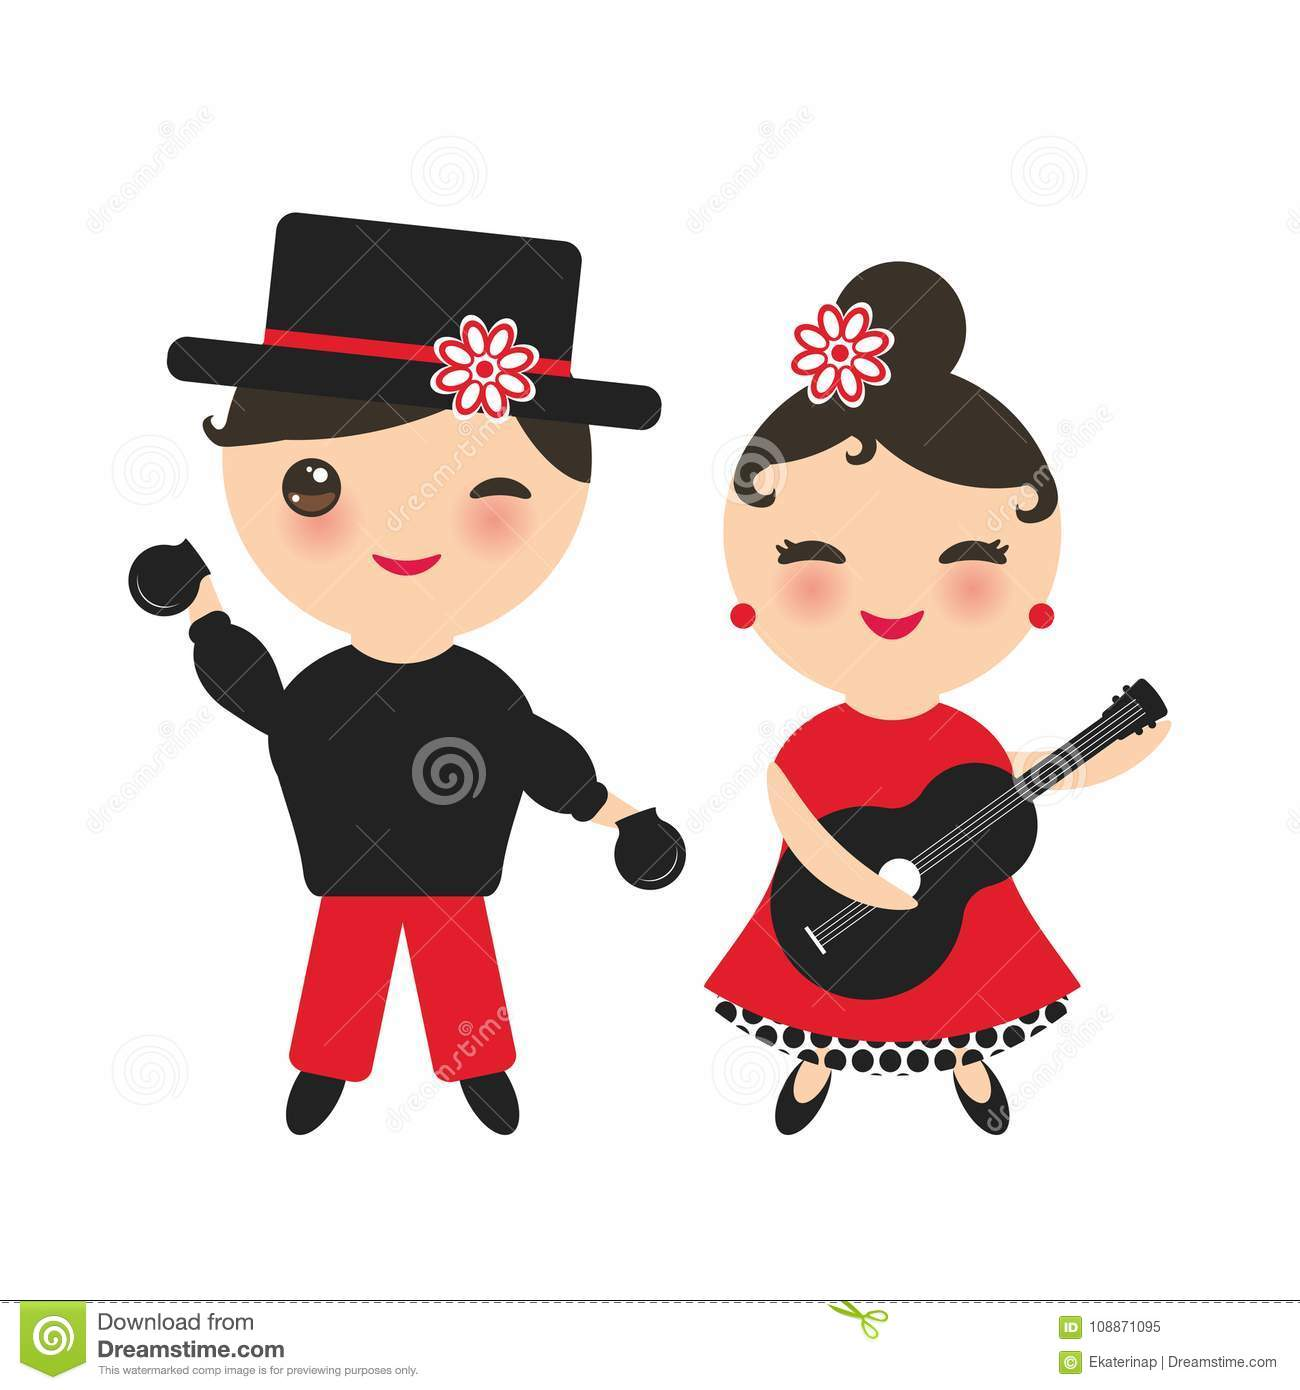 b7e447d2c3b0 Spanish flamenco dancer set. Kawaii cute face with pink cheeks and winking  eyes. Gipsy girl with guitar and boy with castanets, red black white dress,  ...